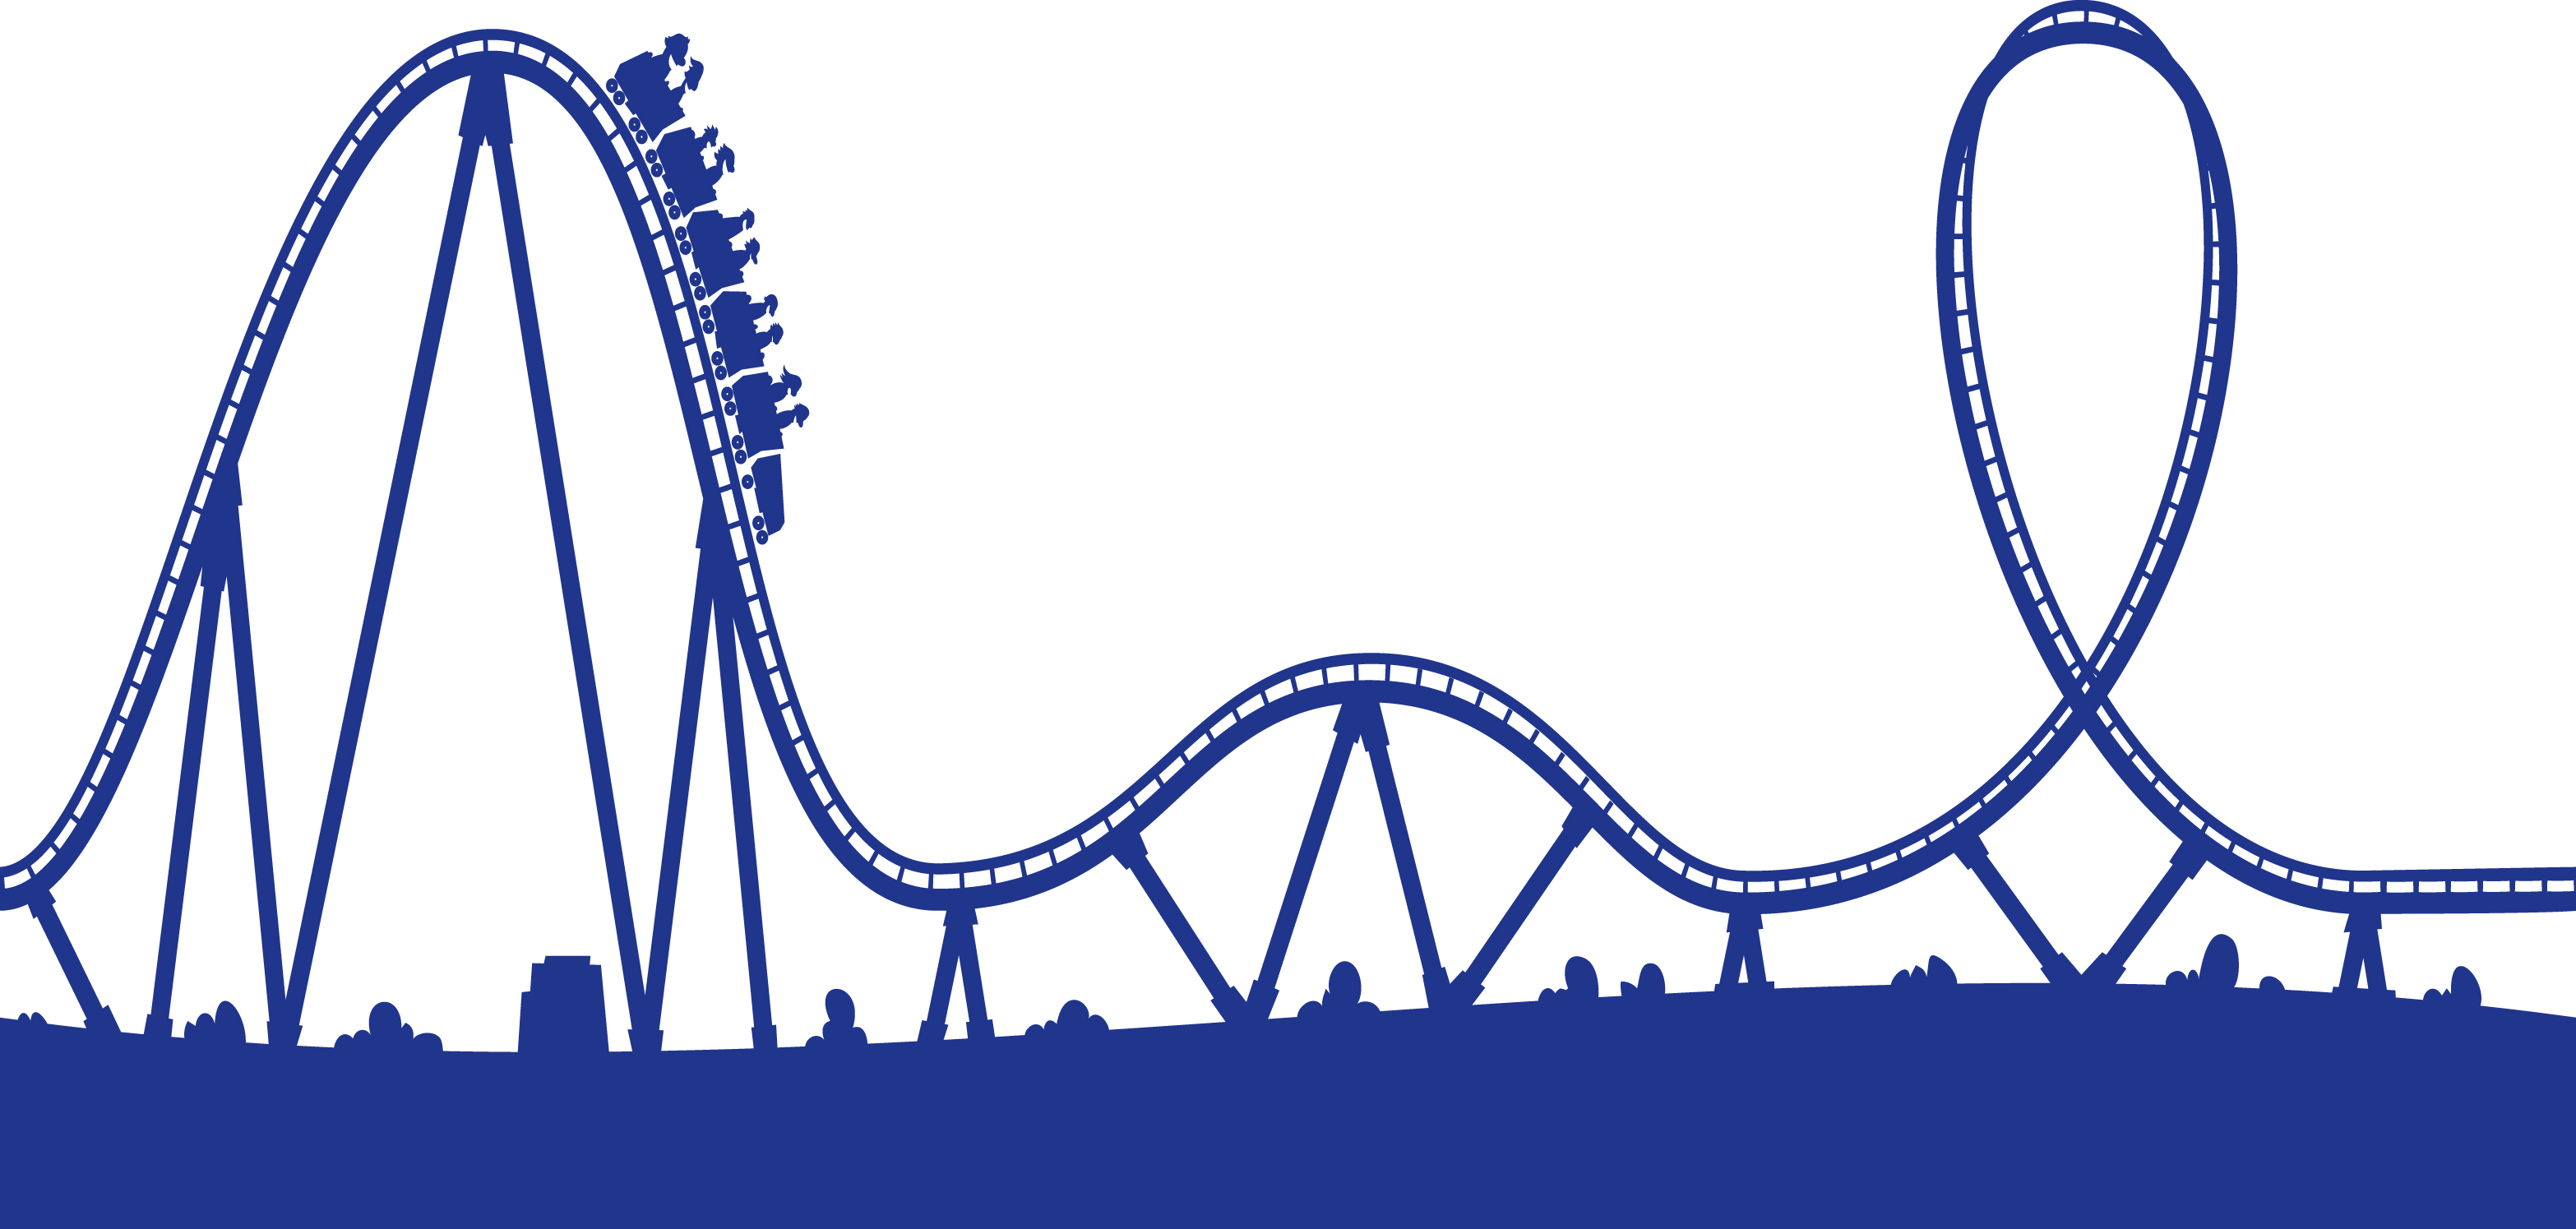 Simple clipart roller coaster Tracks Coaster Roller Track cliparts